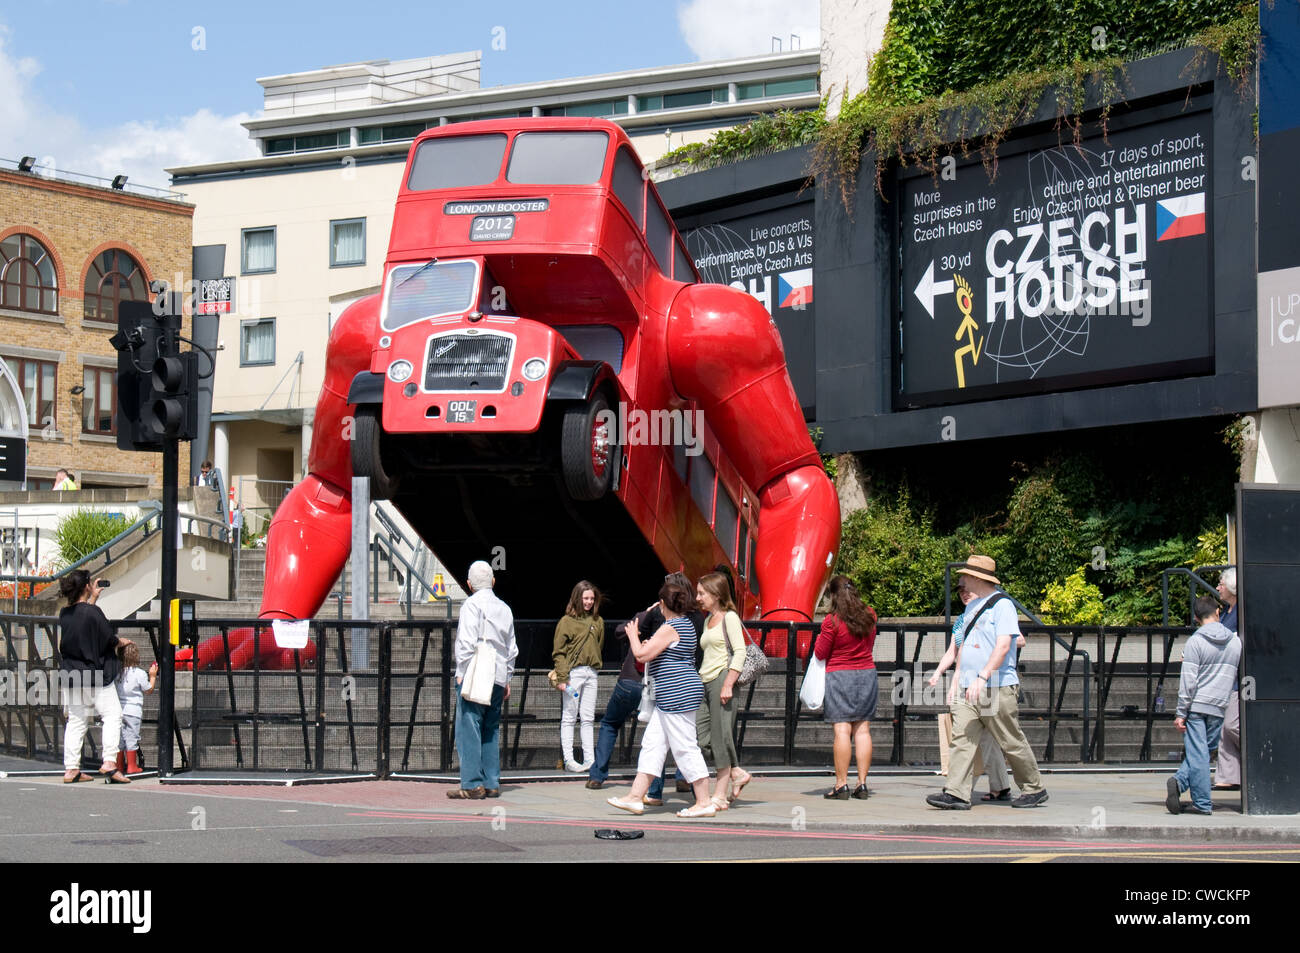 Visitors stand in front  of an old bus which has been converted into a work of art by Czech artist David Cerny. Stock Photo